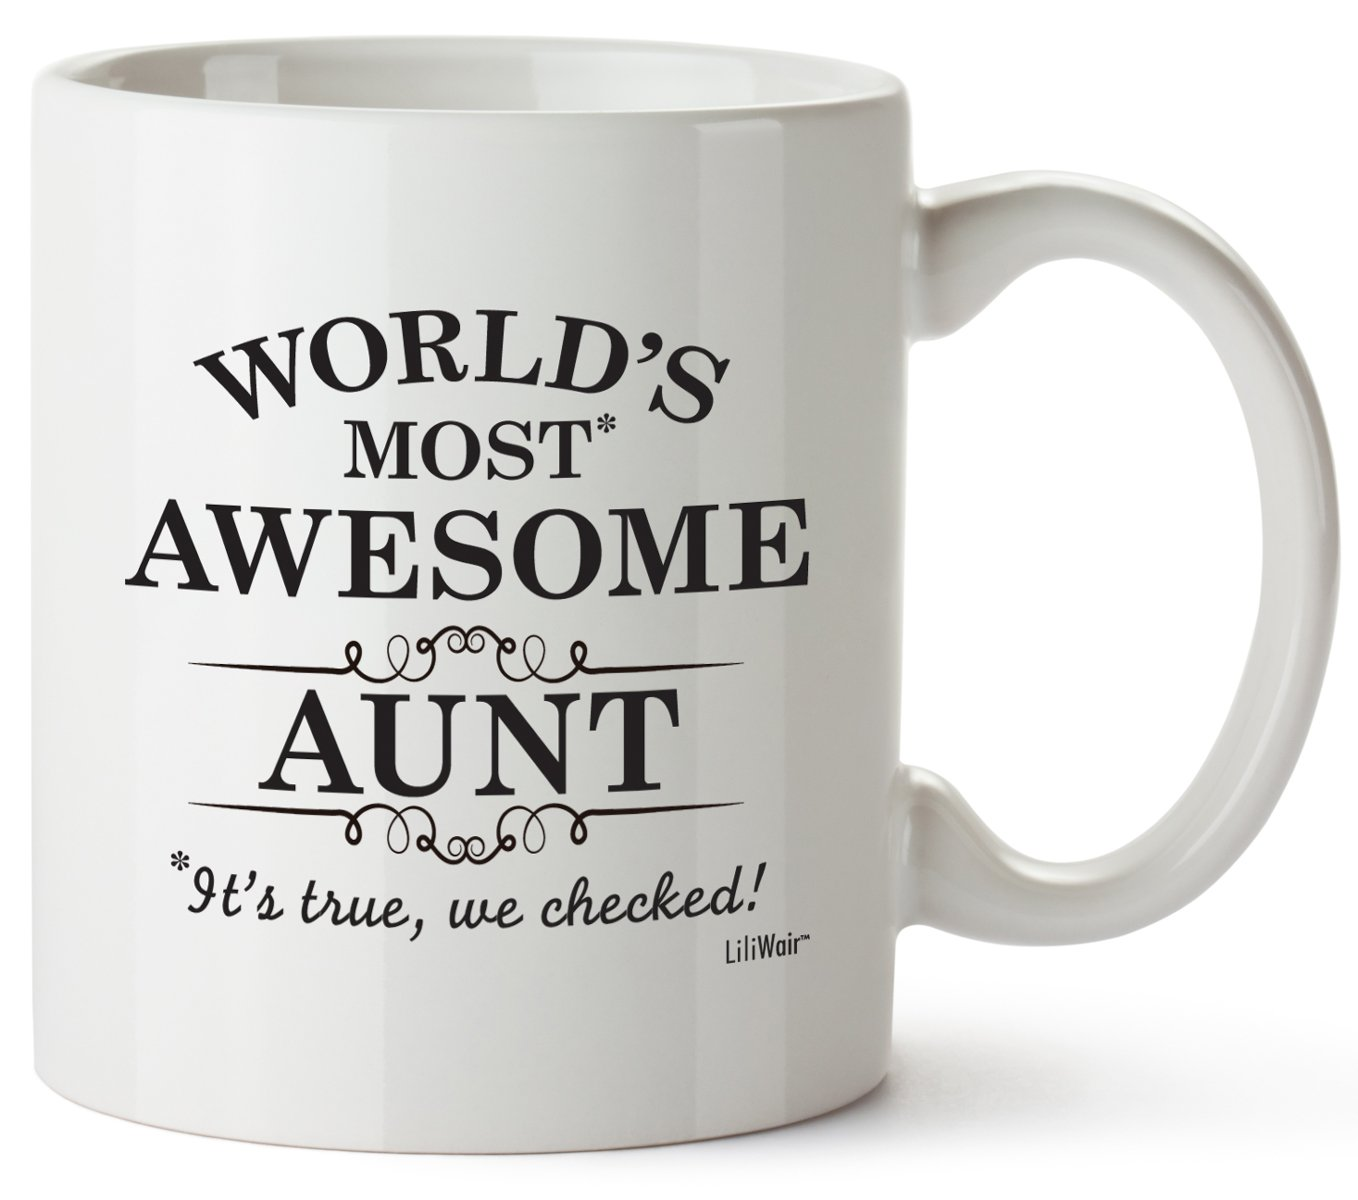 Aunt Gifts From Niece Nephew Christmas Gift For Aunts Cool Ideas Auntie Best Ever Birthday Coffee Mugs Cups The Greatest Birthdays